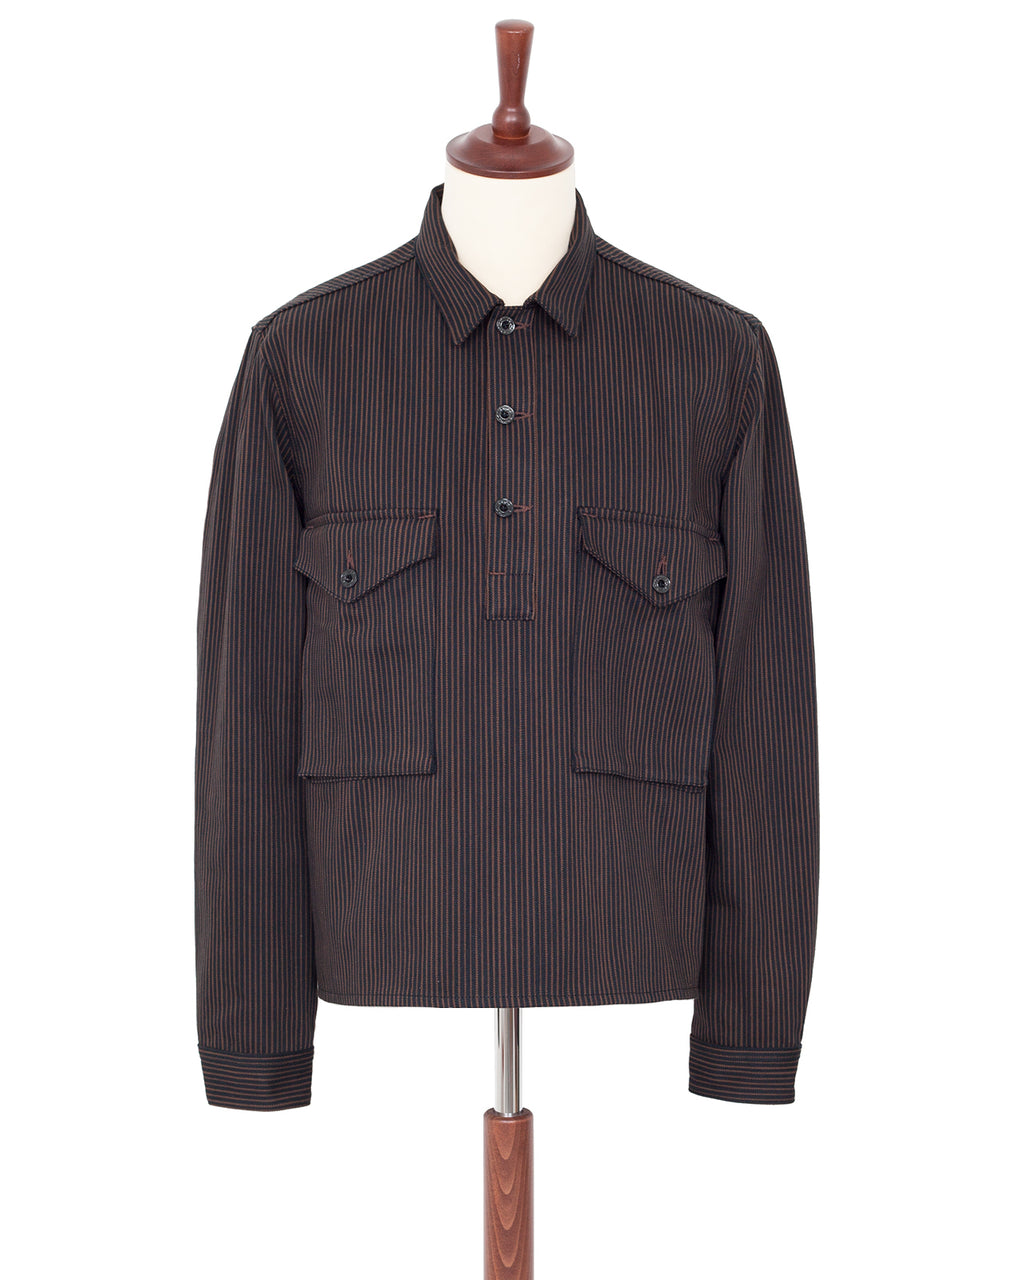 Indigofera Terrence Jacket, Black/Brown Hickory Stripe